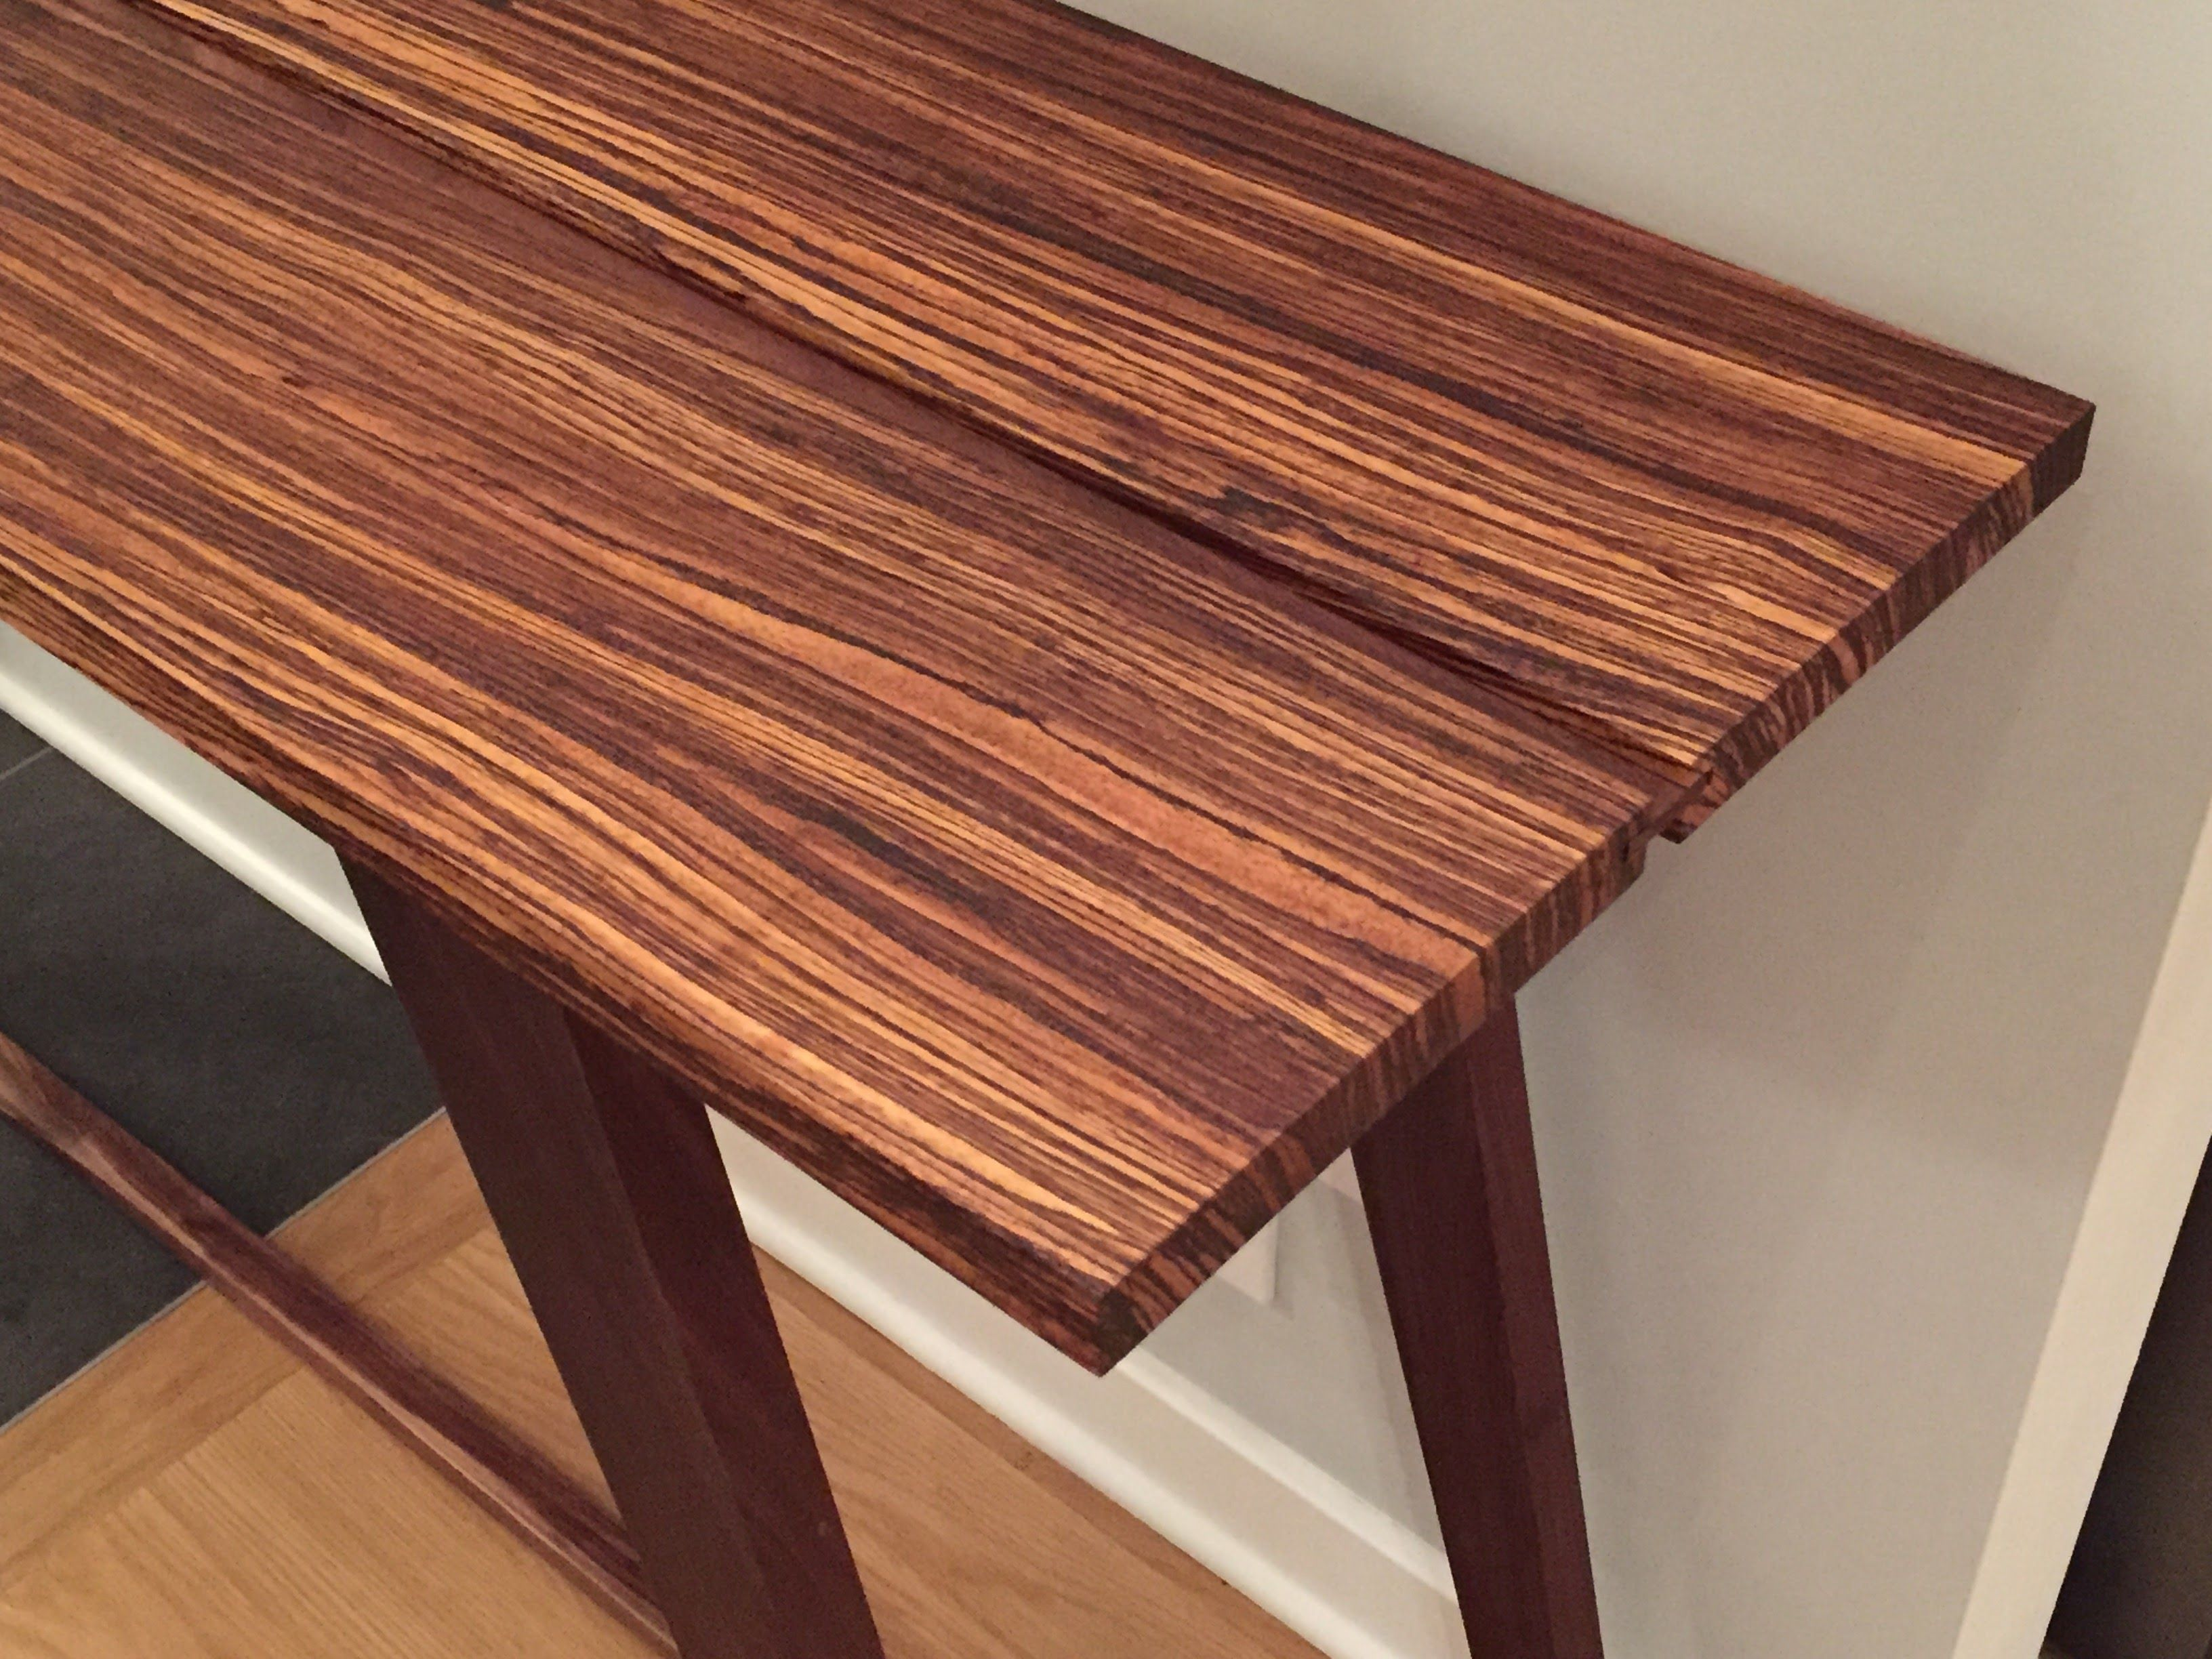 Zebrawood Top With A Black Walnut Spline For Expansion